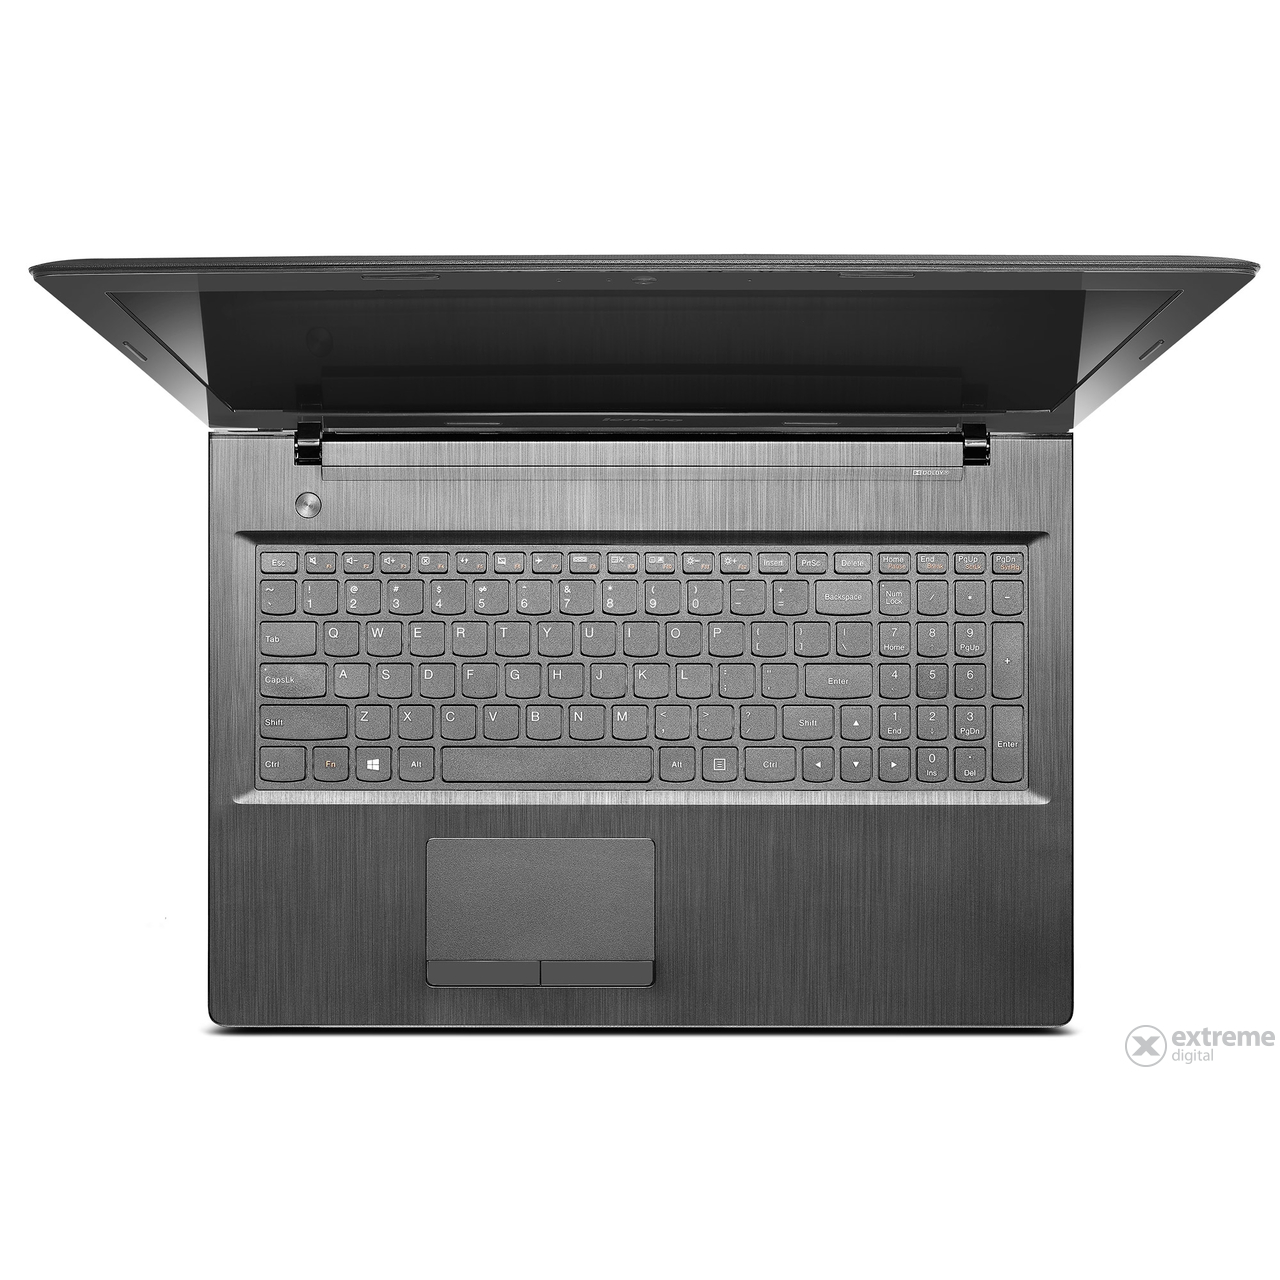 lenovo-g50-45-80e301ashv-notebook-windows-8-1-fekete_8e5fee5a.jpg